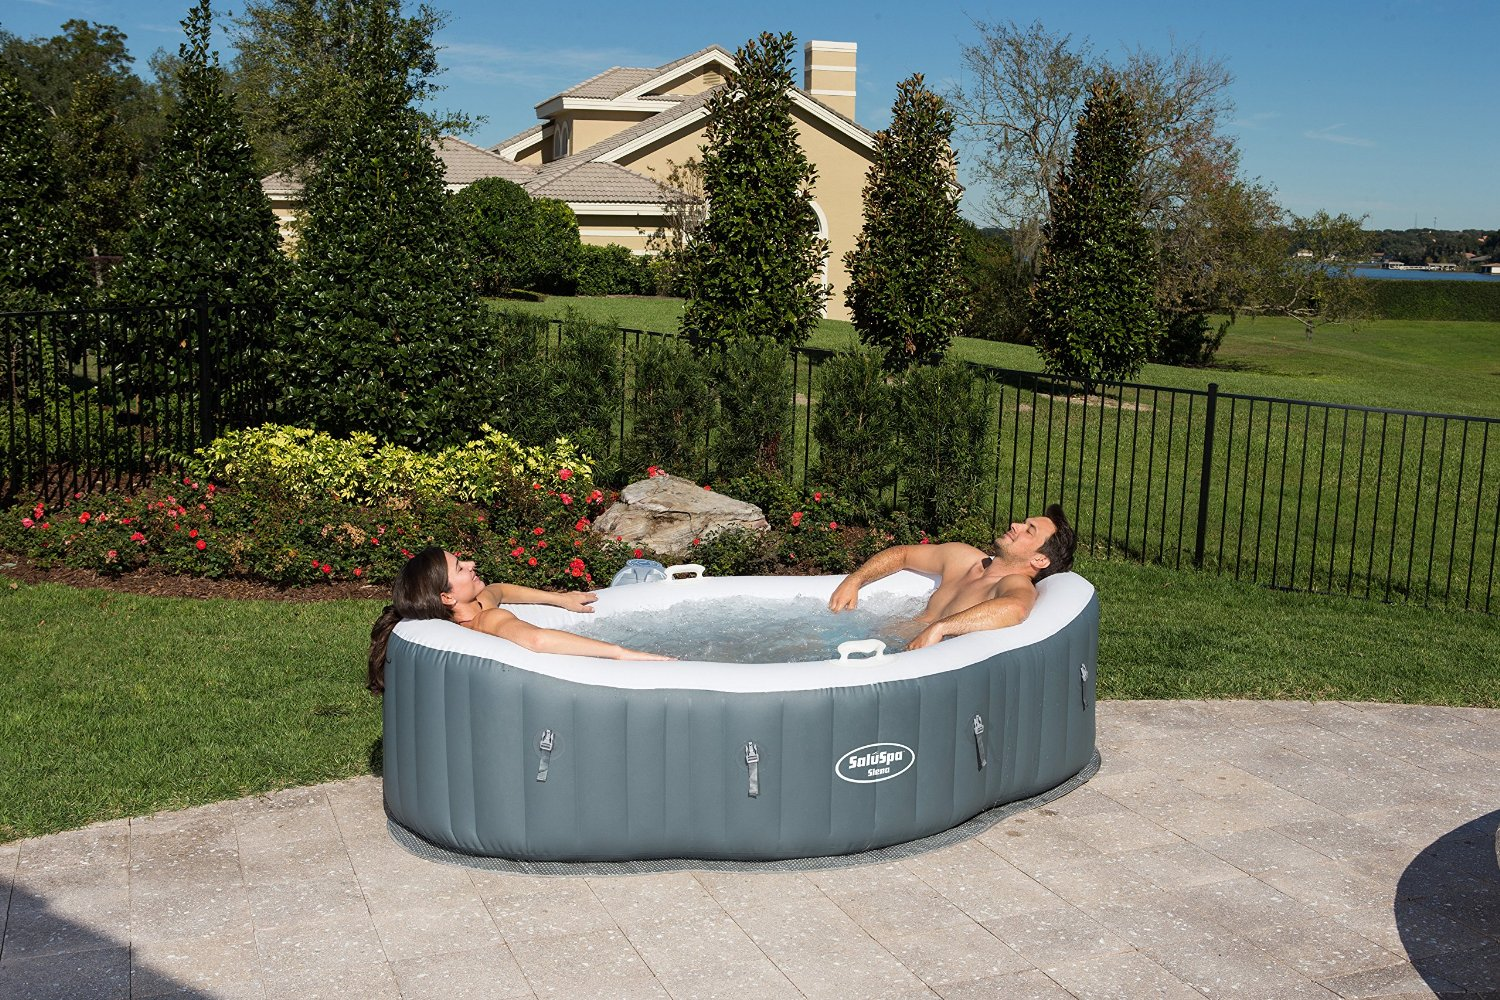 Saluspa Siena 2 person hot tub